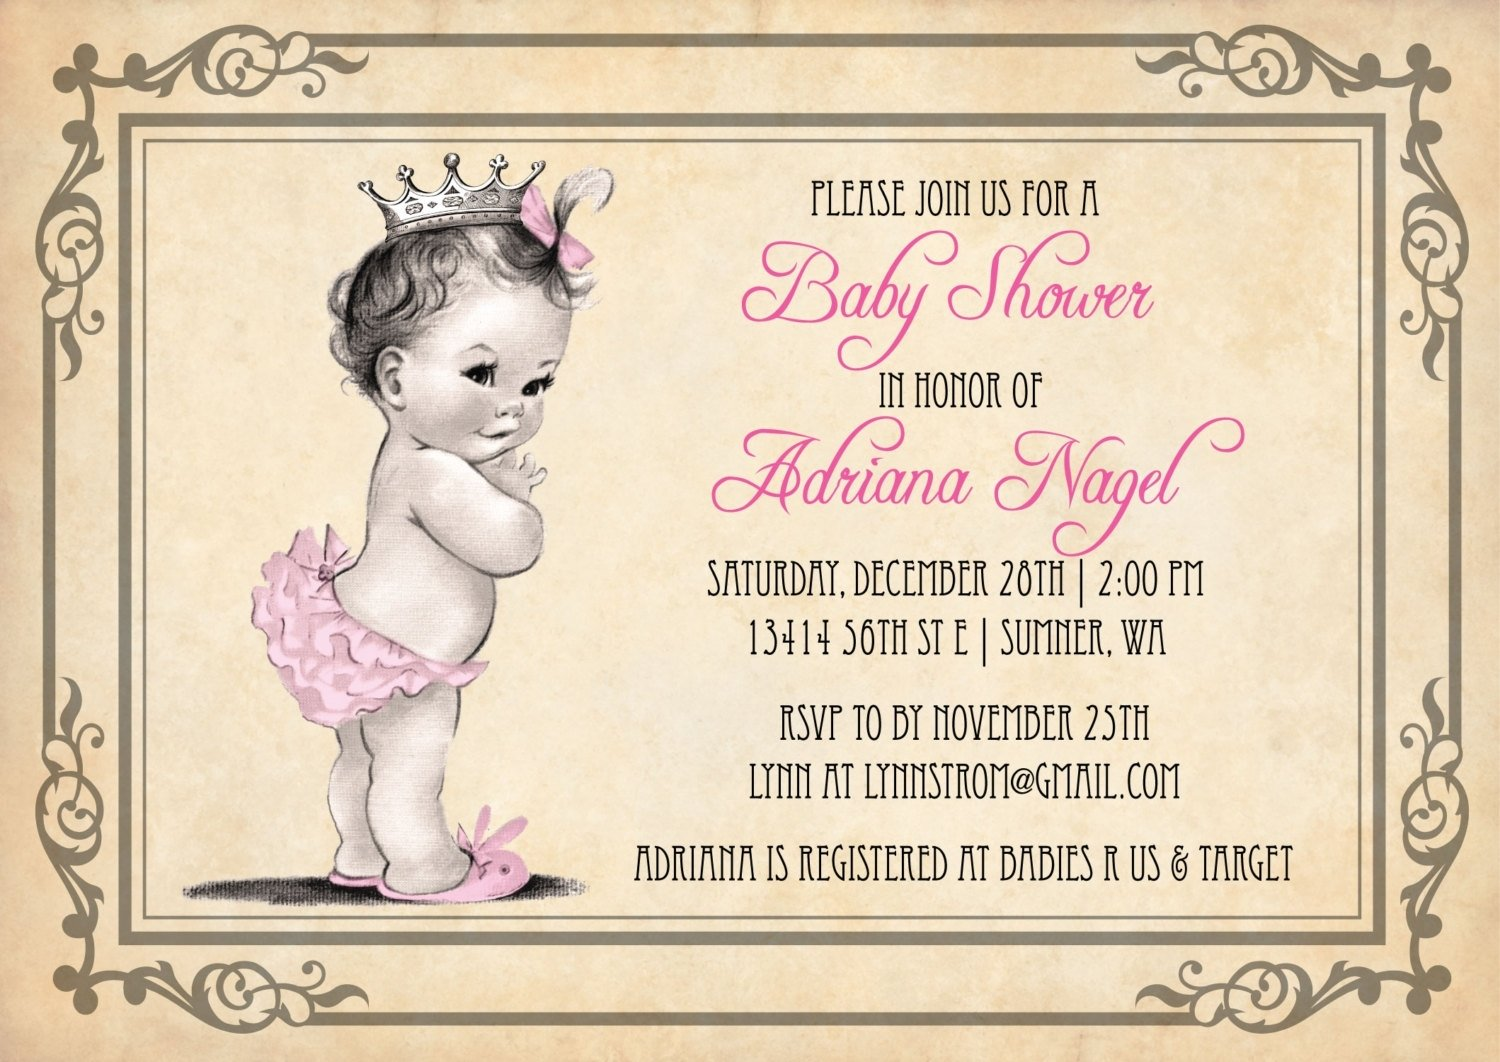 10 Fashionable Ideas For Baby Shower Invitations unique baby shower girl invitations as prepossessing ideas baby 2021